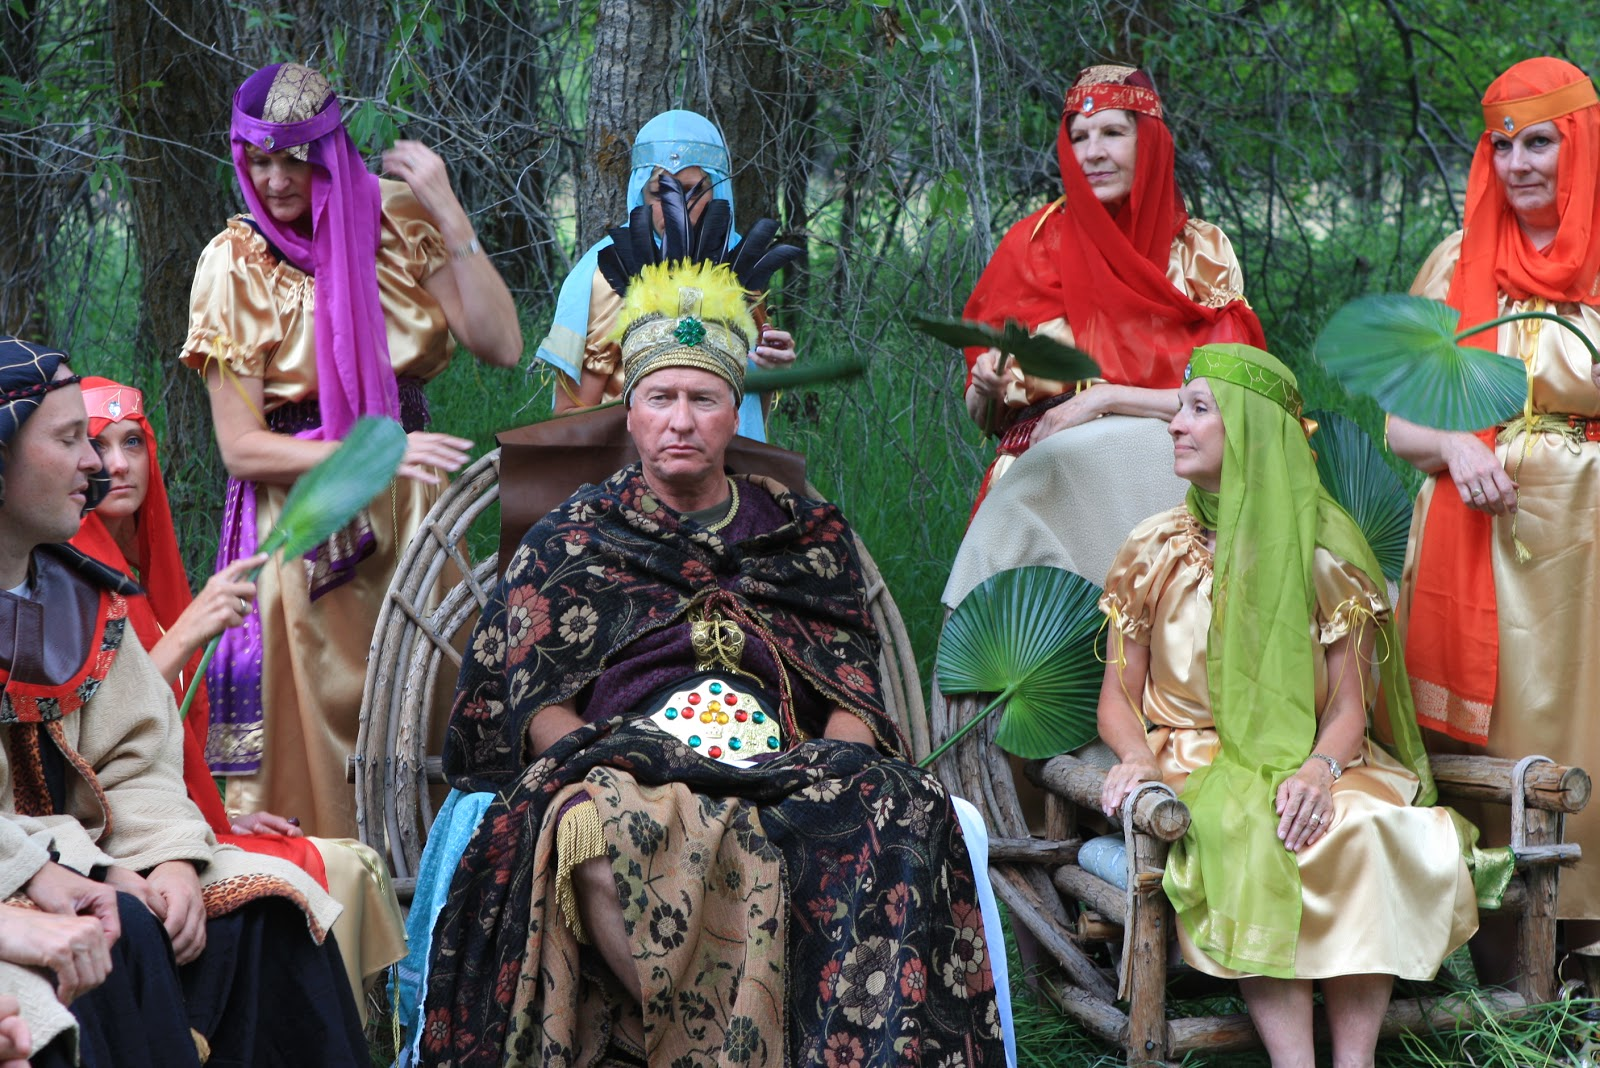 King Noah And His Wicked Women